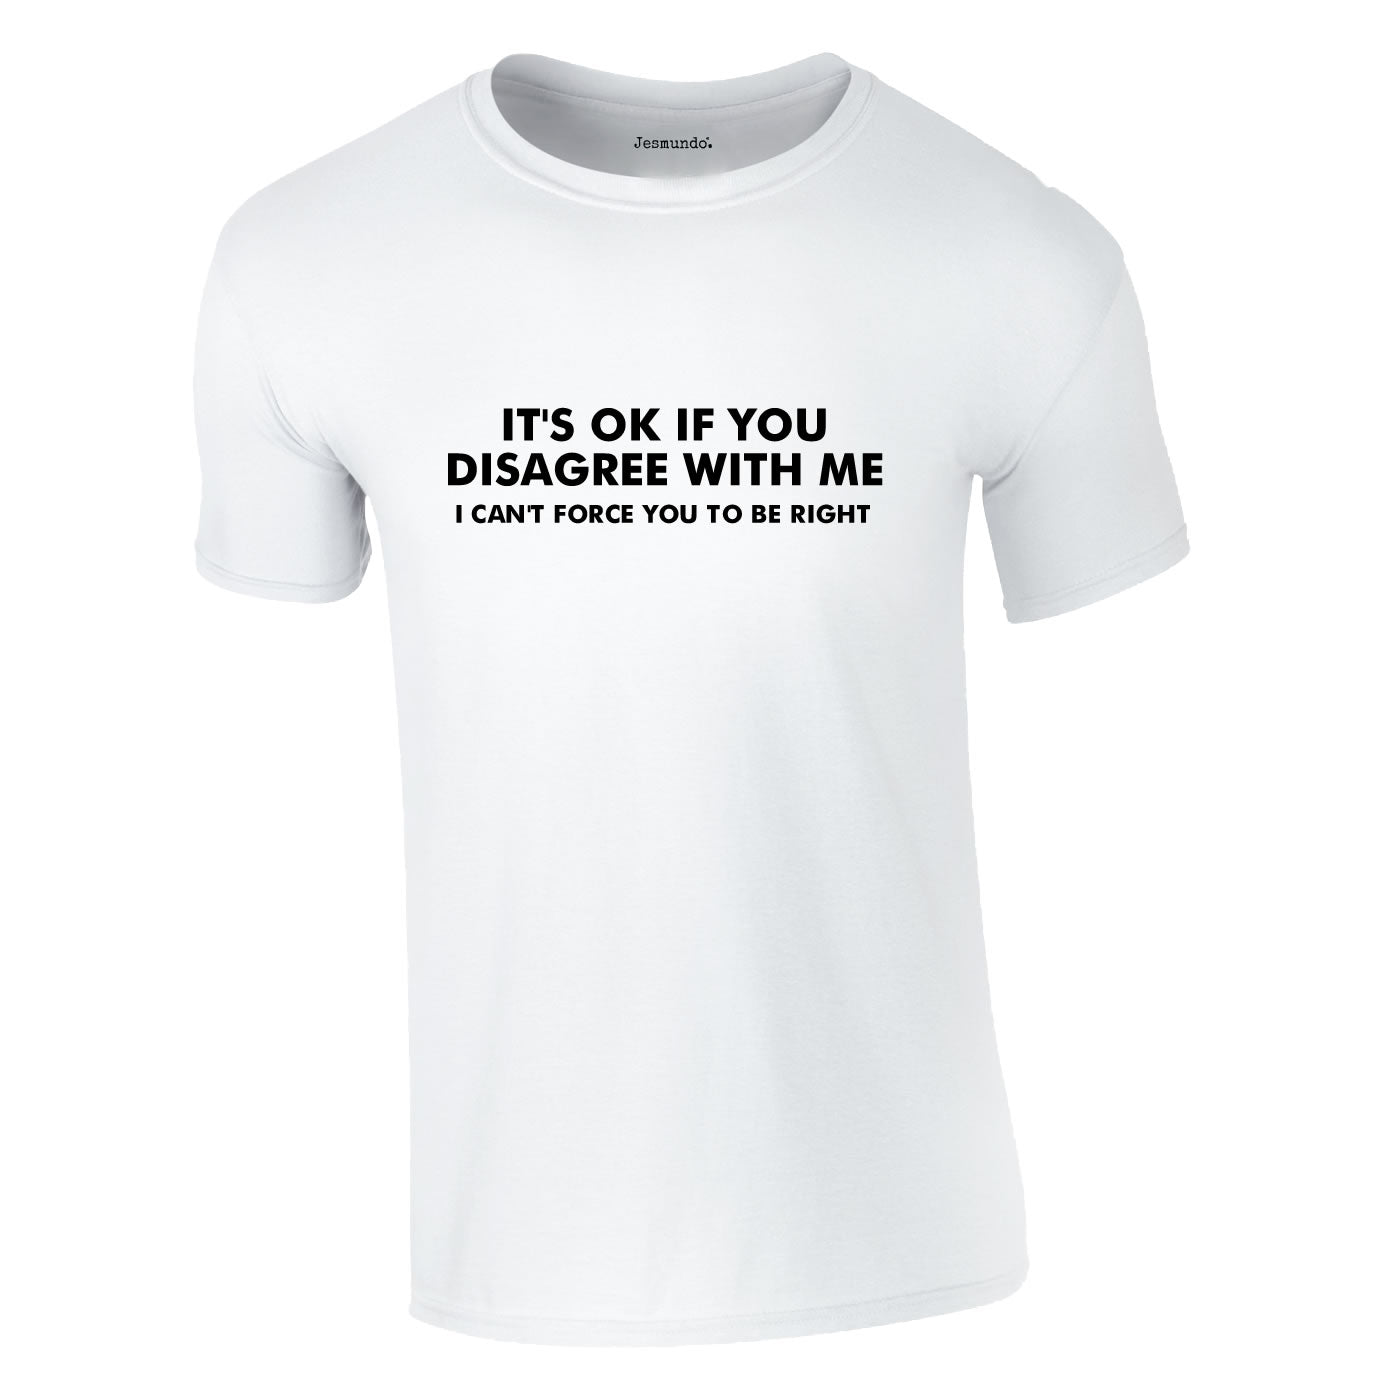 It's OK If You Disagree With Me - I Can't Force You To Be Right T Shirt